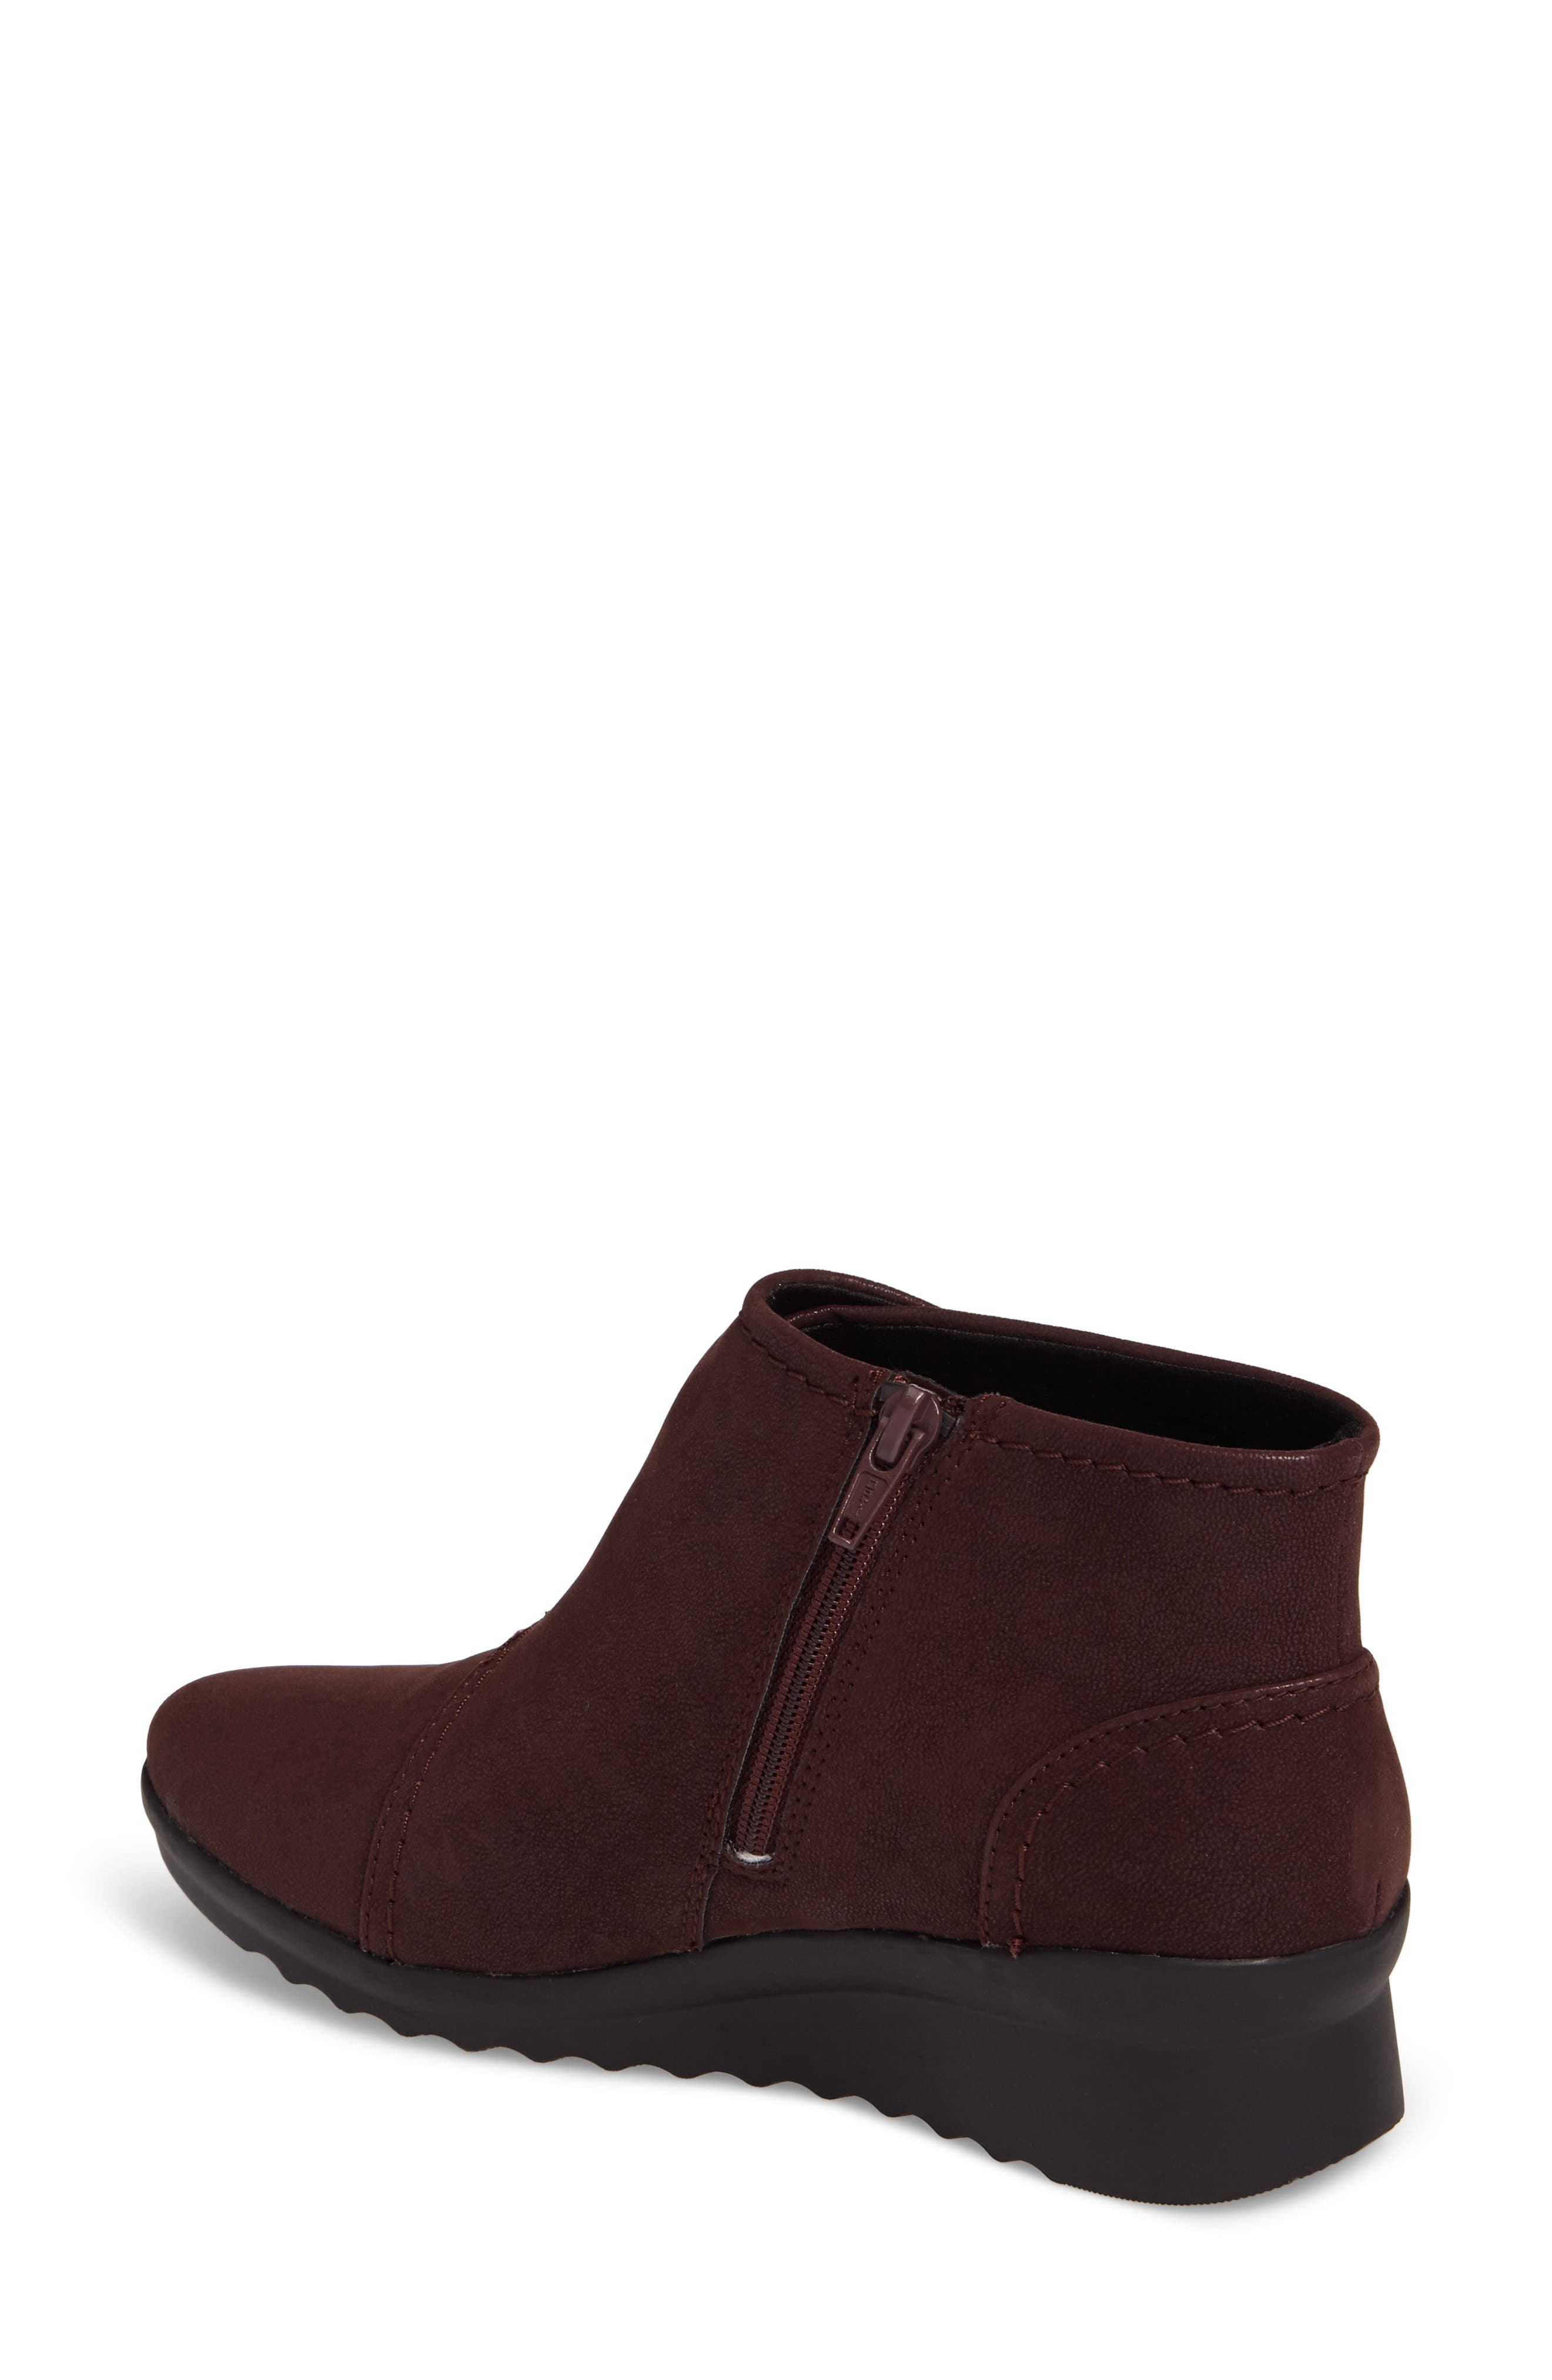 Caddell Rush Bootie,                             Alternate thumbnail 2, color,                             Burgundy Leather